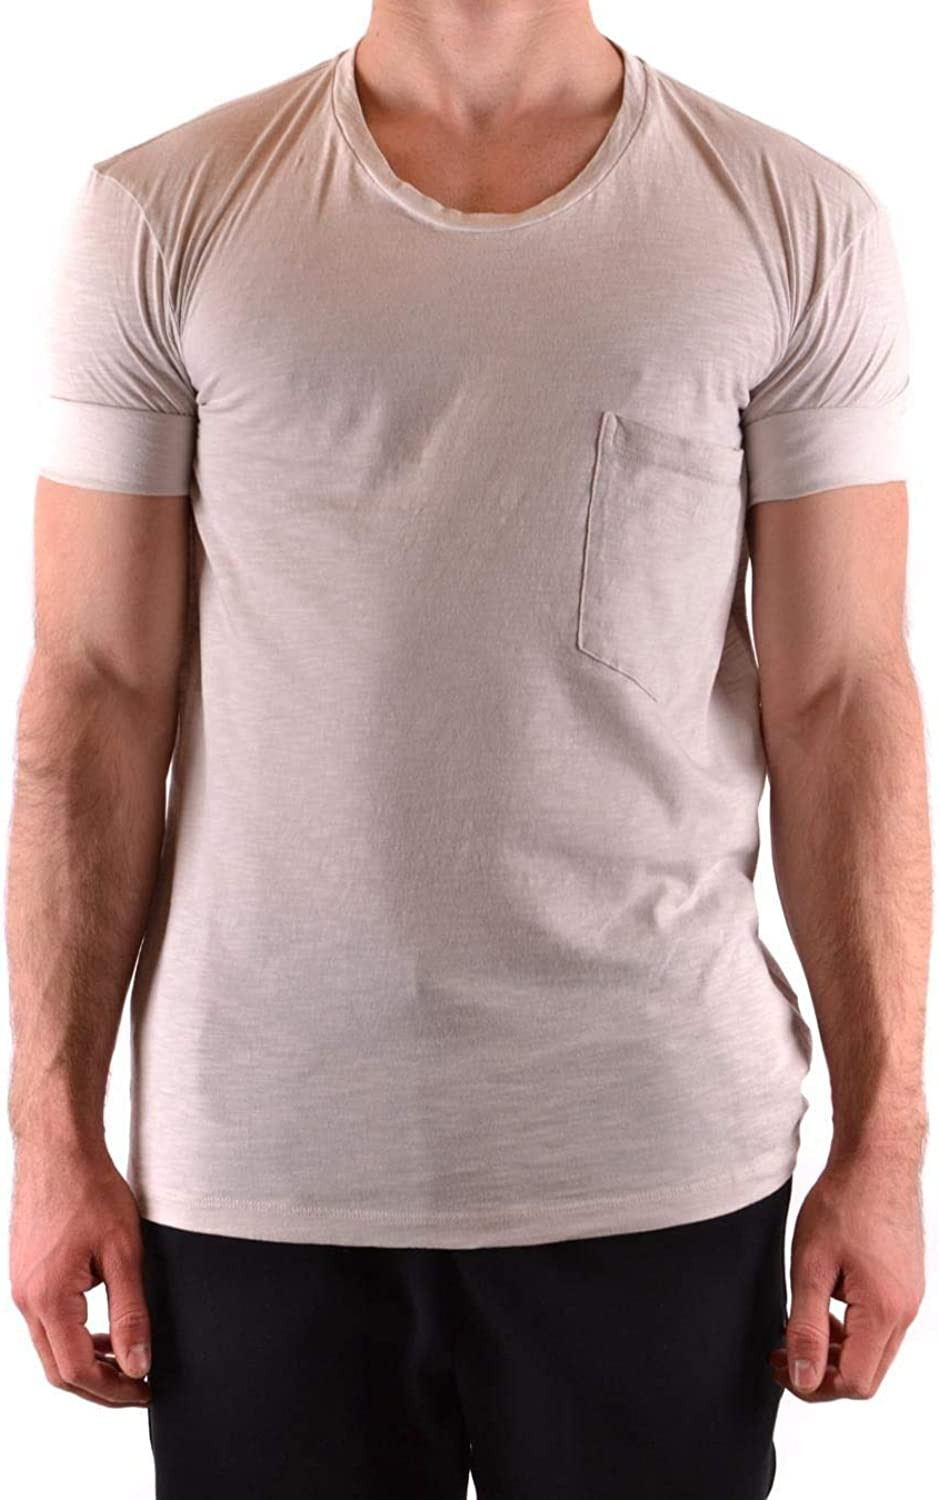 NEIL BARRETT Men's BJT525TL538C1302 White Cotton TShirt